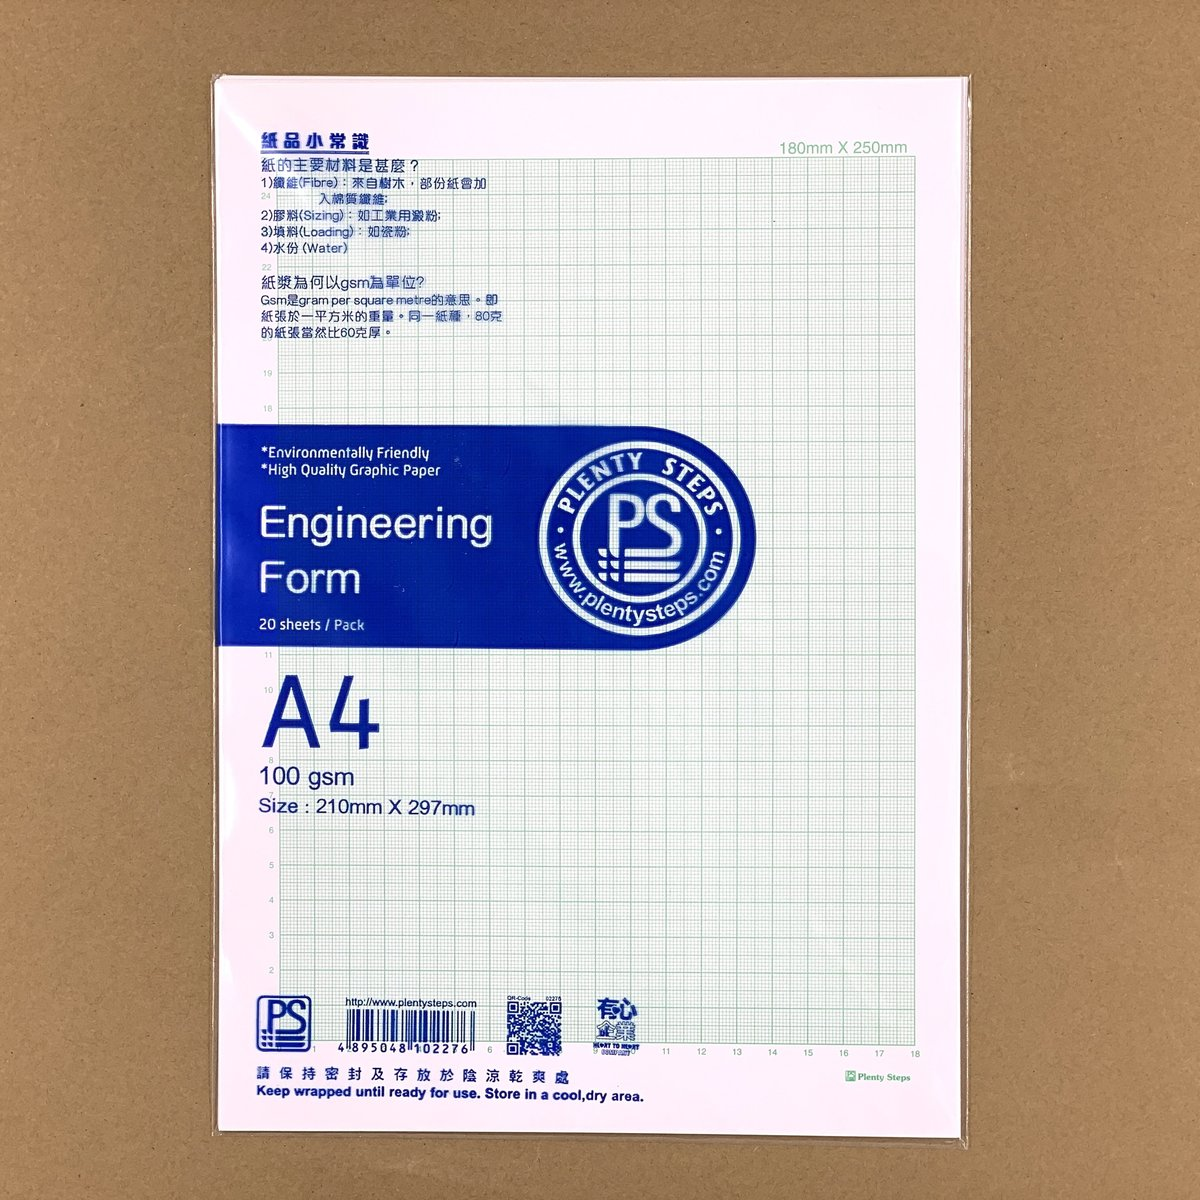 A4 Graphic Paper / Engineering Form (1mm X 1mm checks) - 3 packs